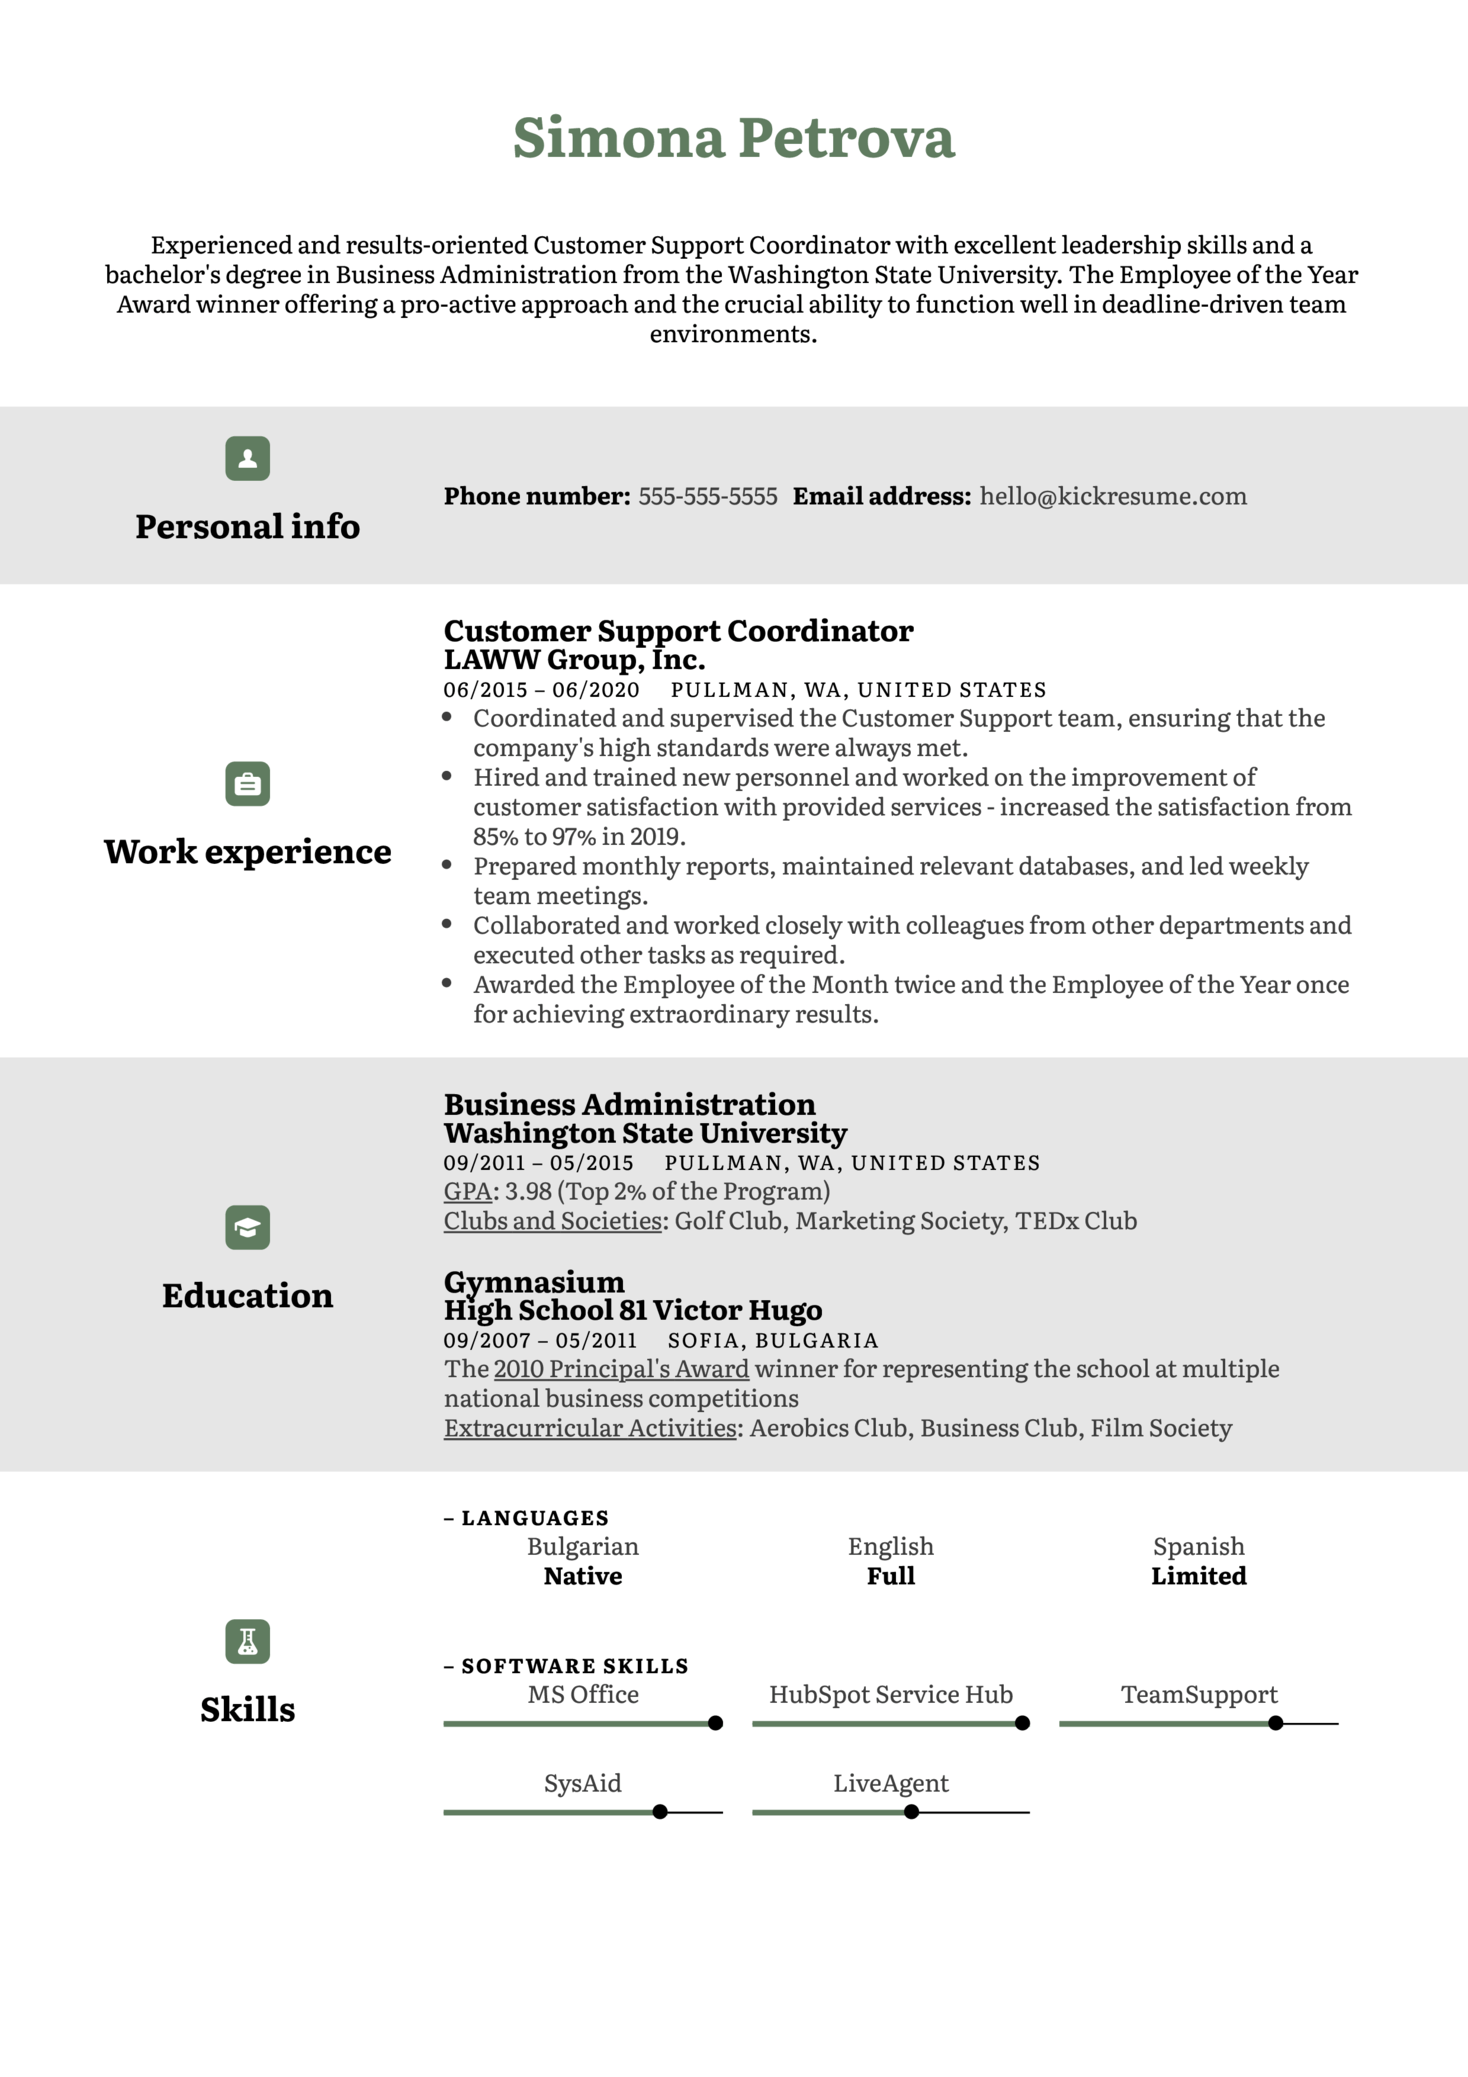 Free Customer Support CV Example (Part 1)